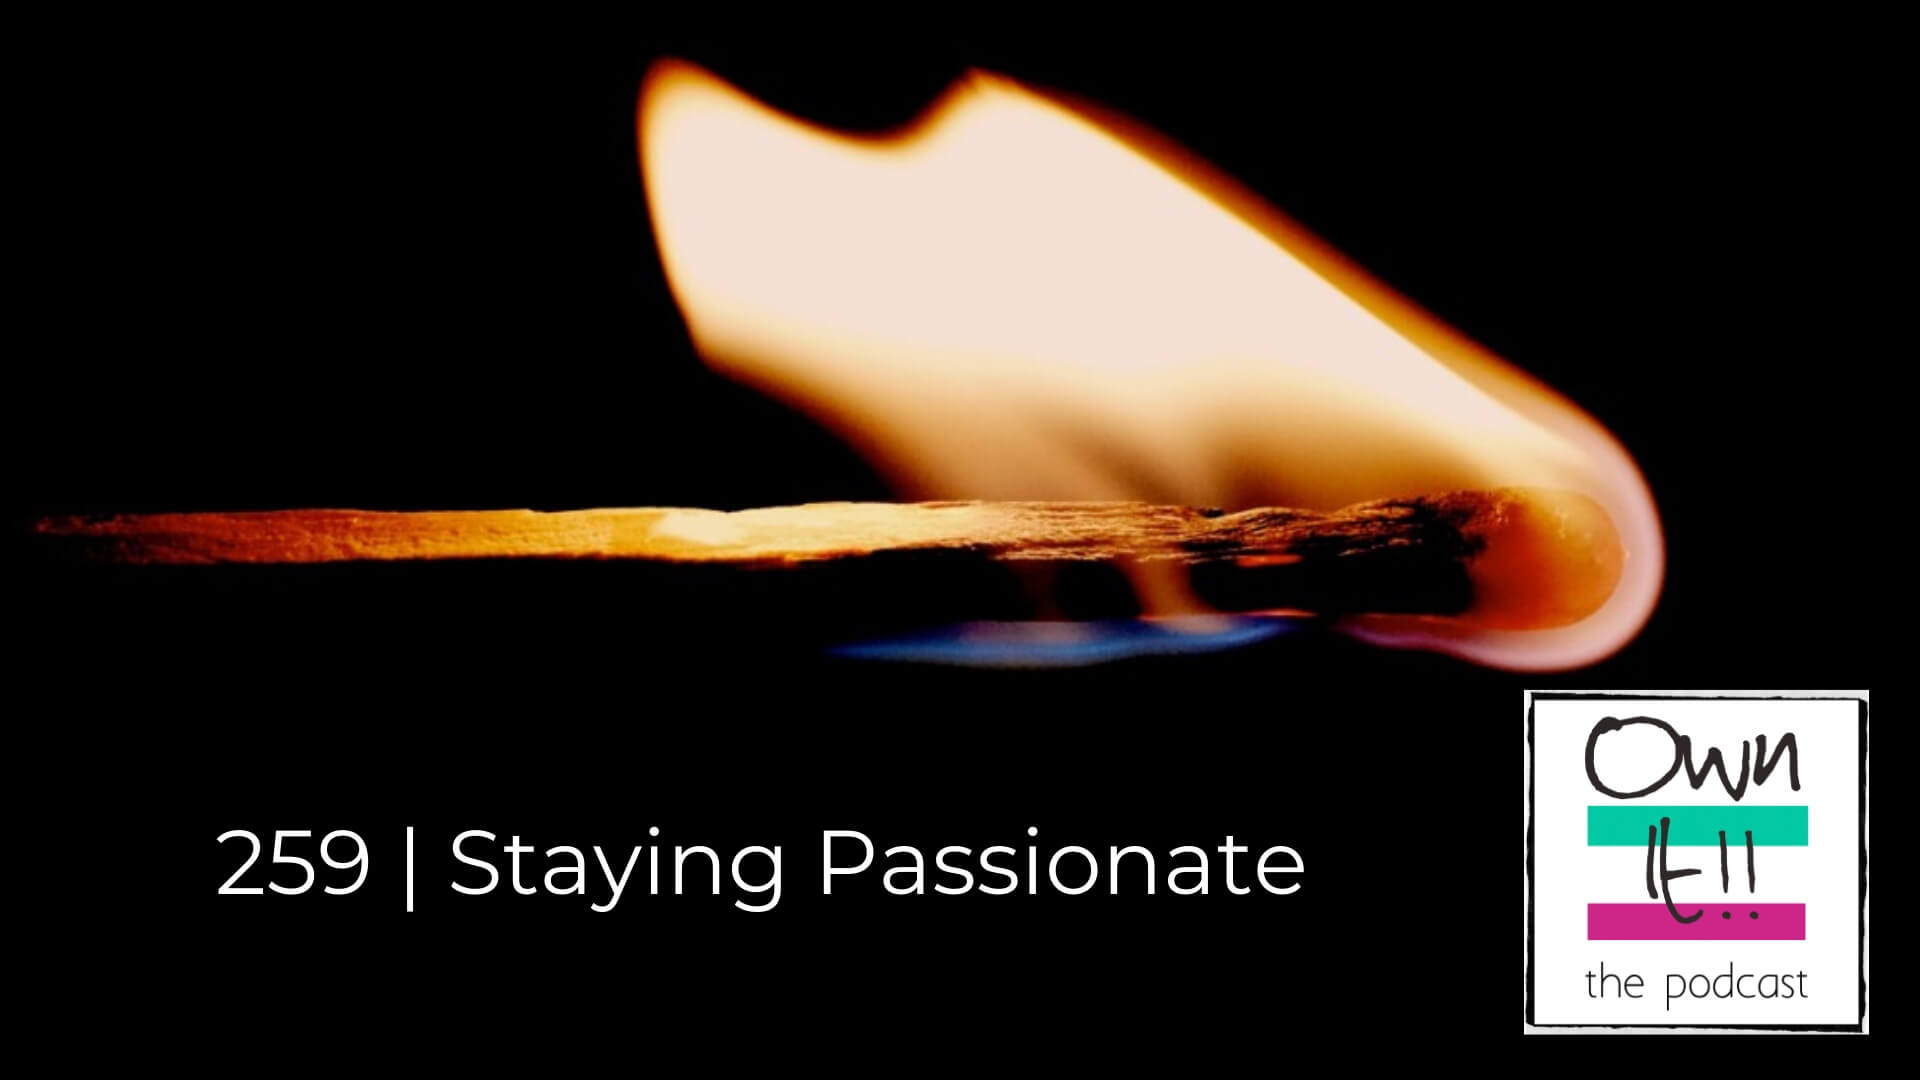 Own It! 259 | Staying Passionate